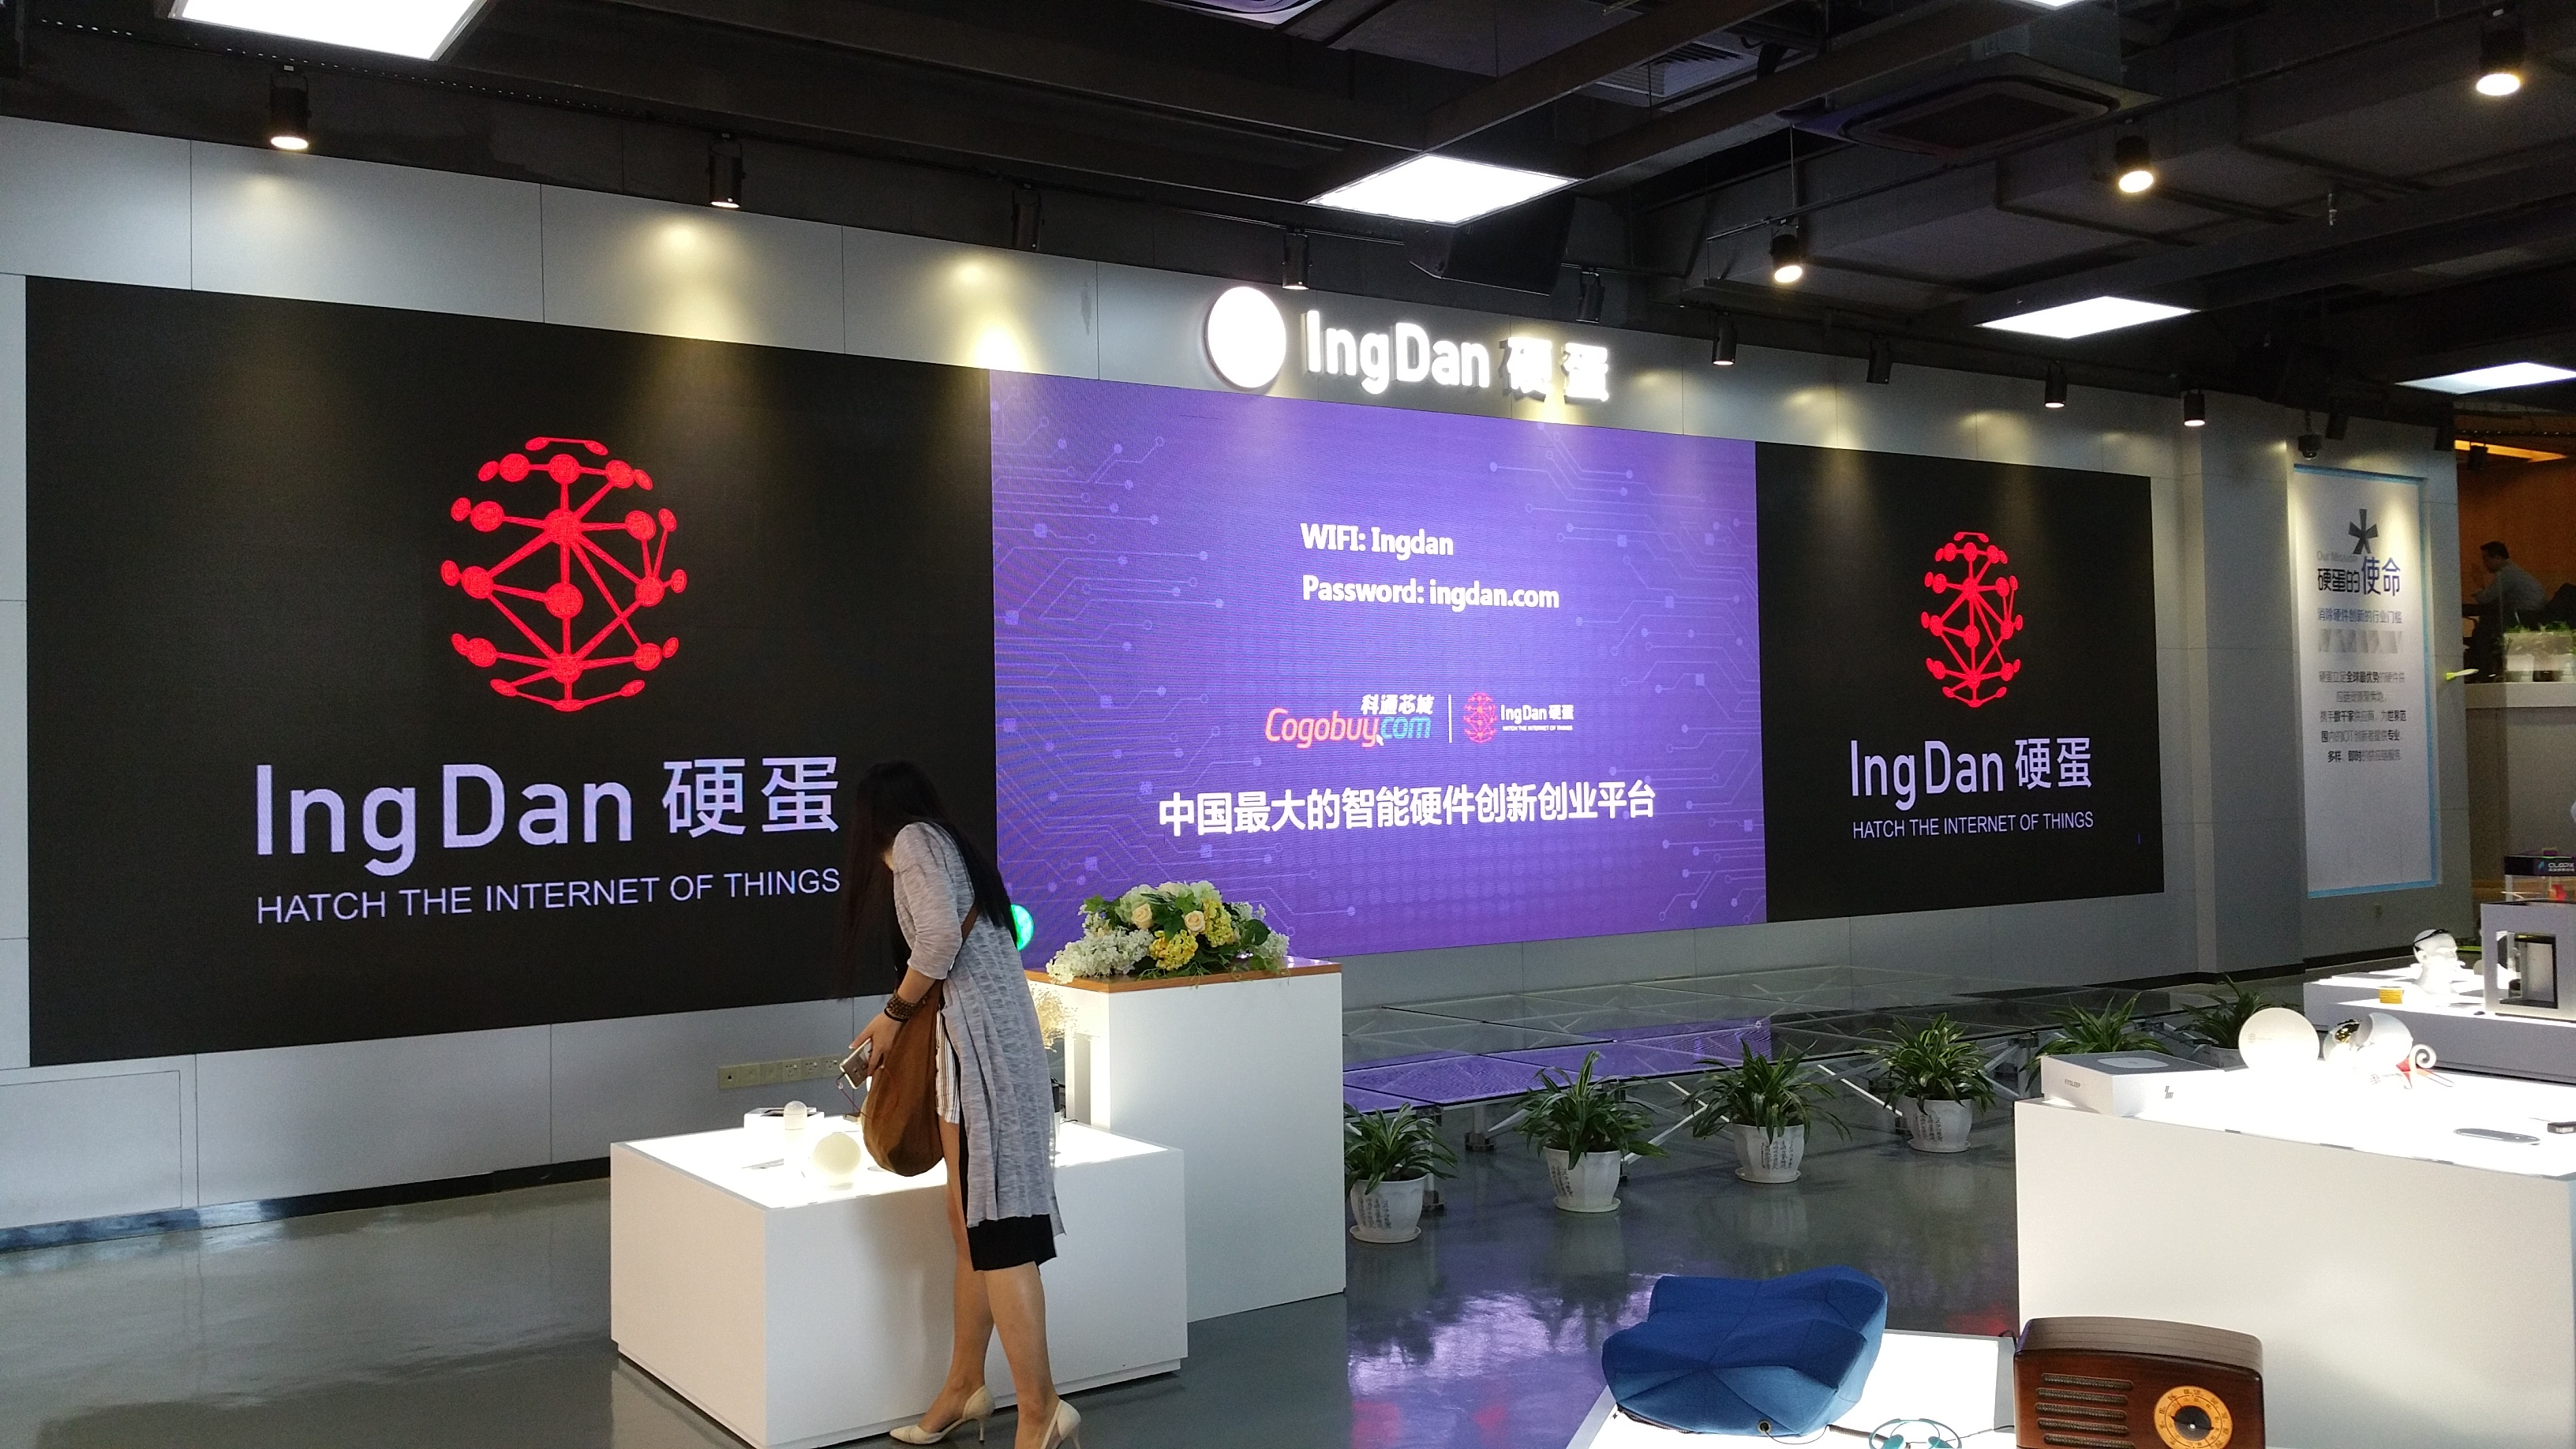 L'interno dell'Ingdan Experience Center di Shenzhen